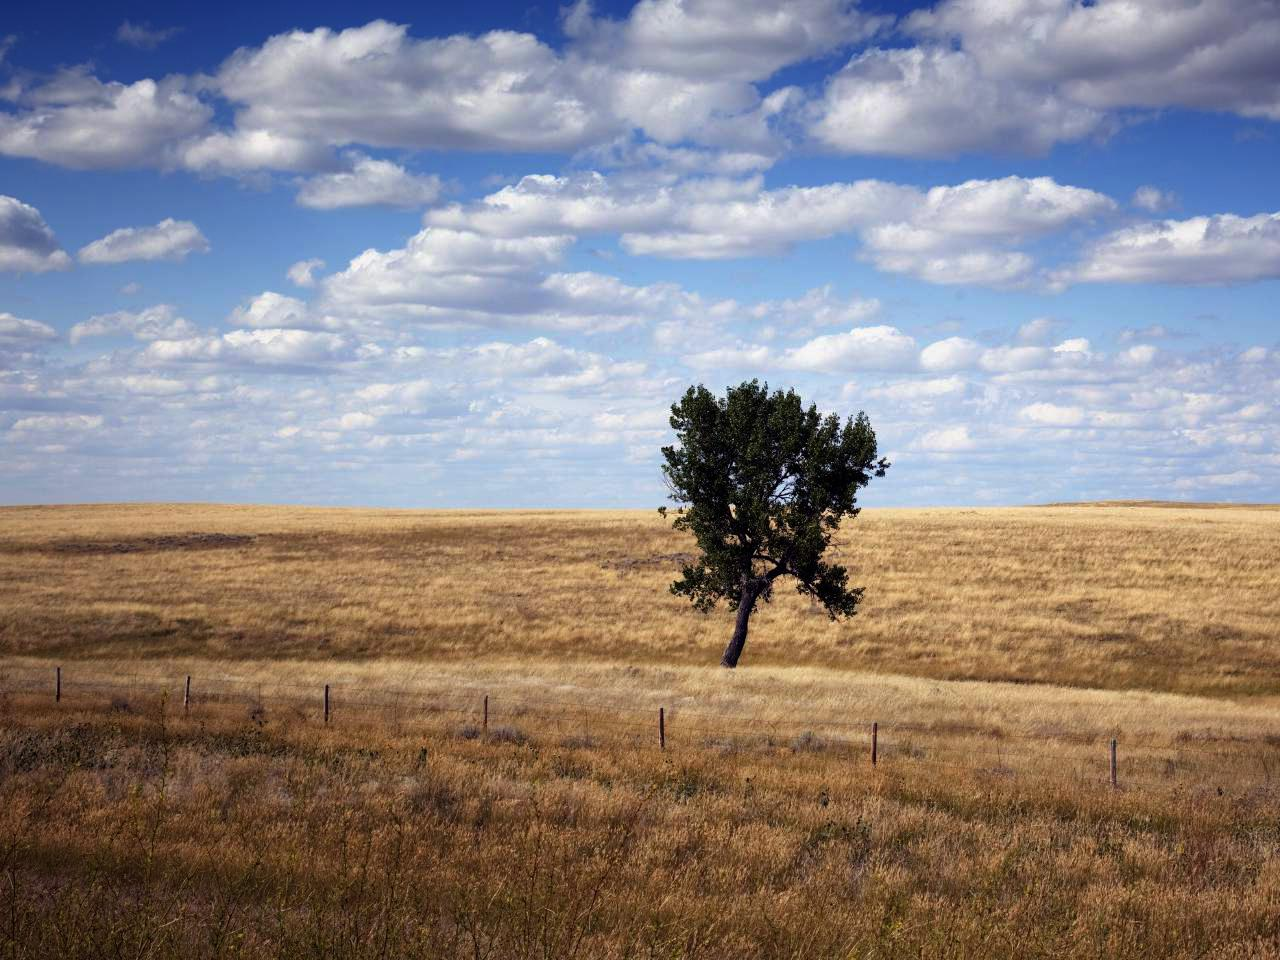 Brown grasslands receding into the horizon, with a single tree in the center of the frame.